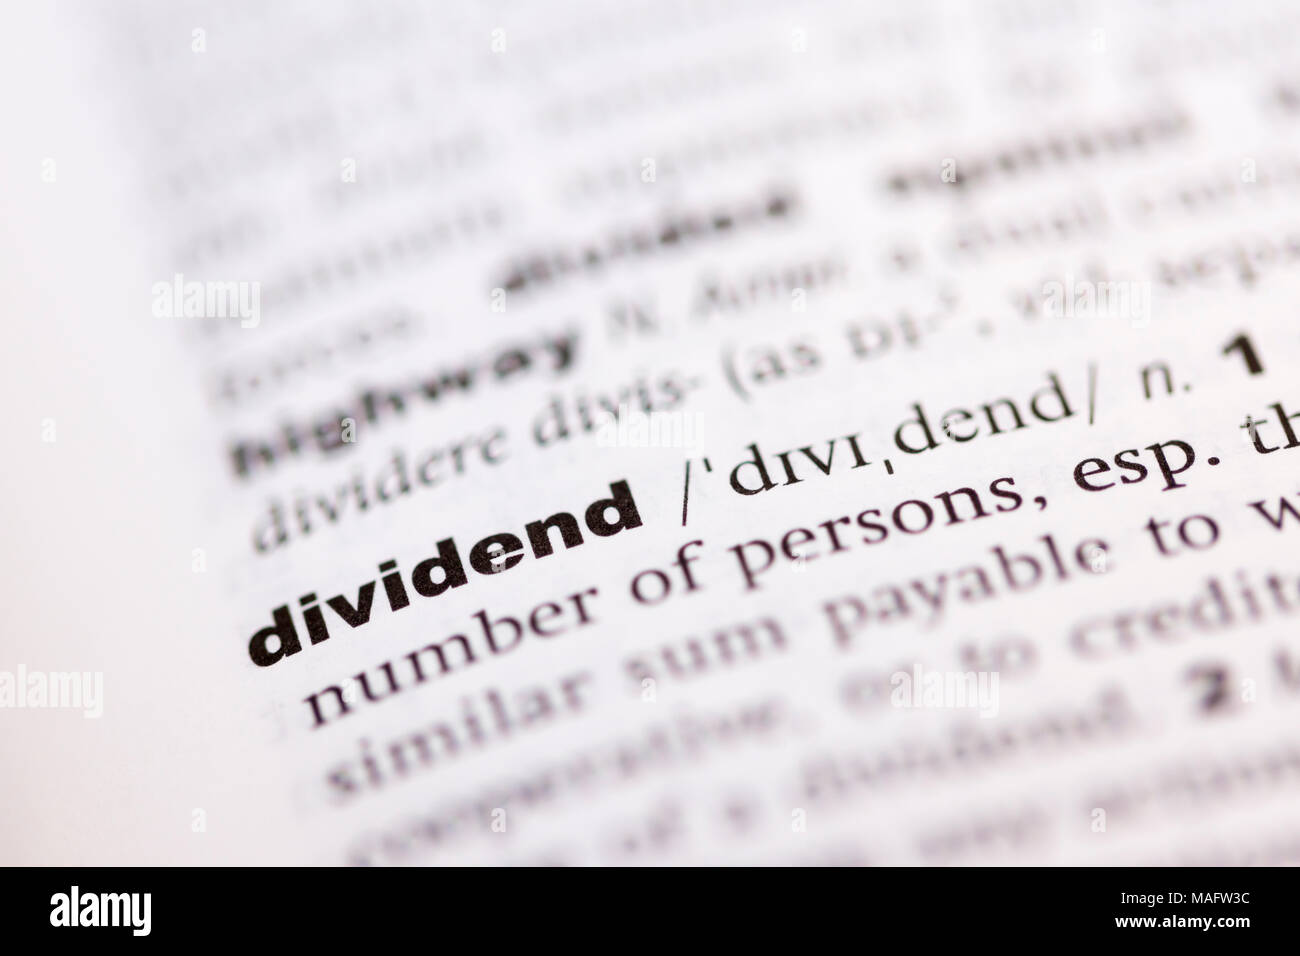 A macro shot showing the definition of the word dividend in an English dictionary - Stock Image